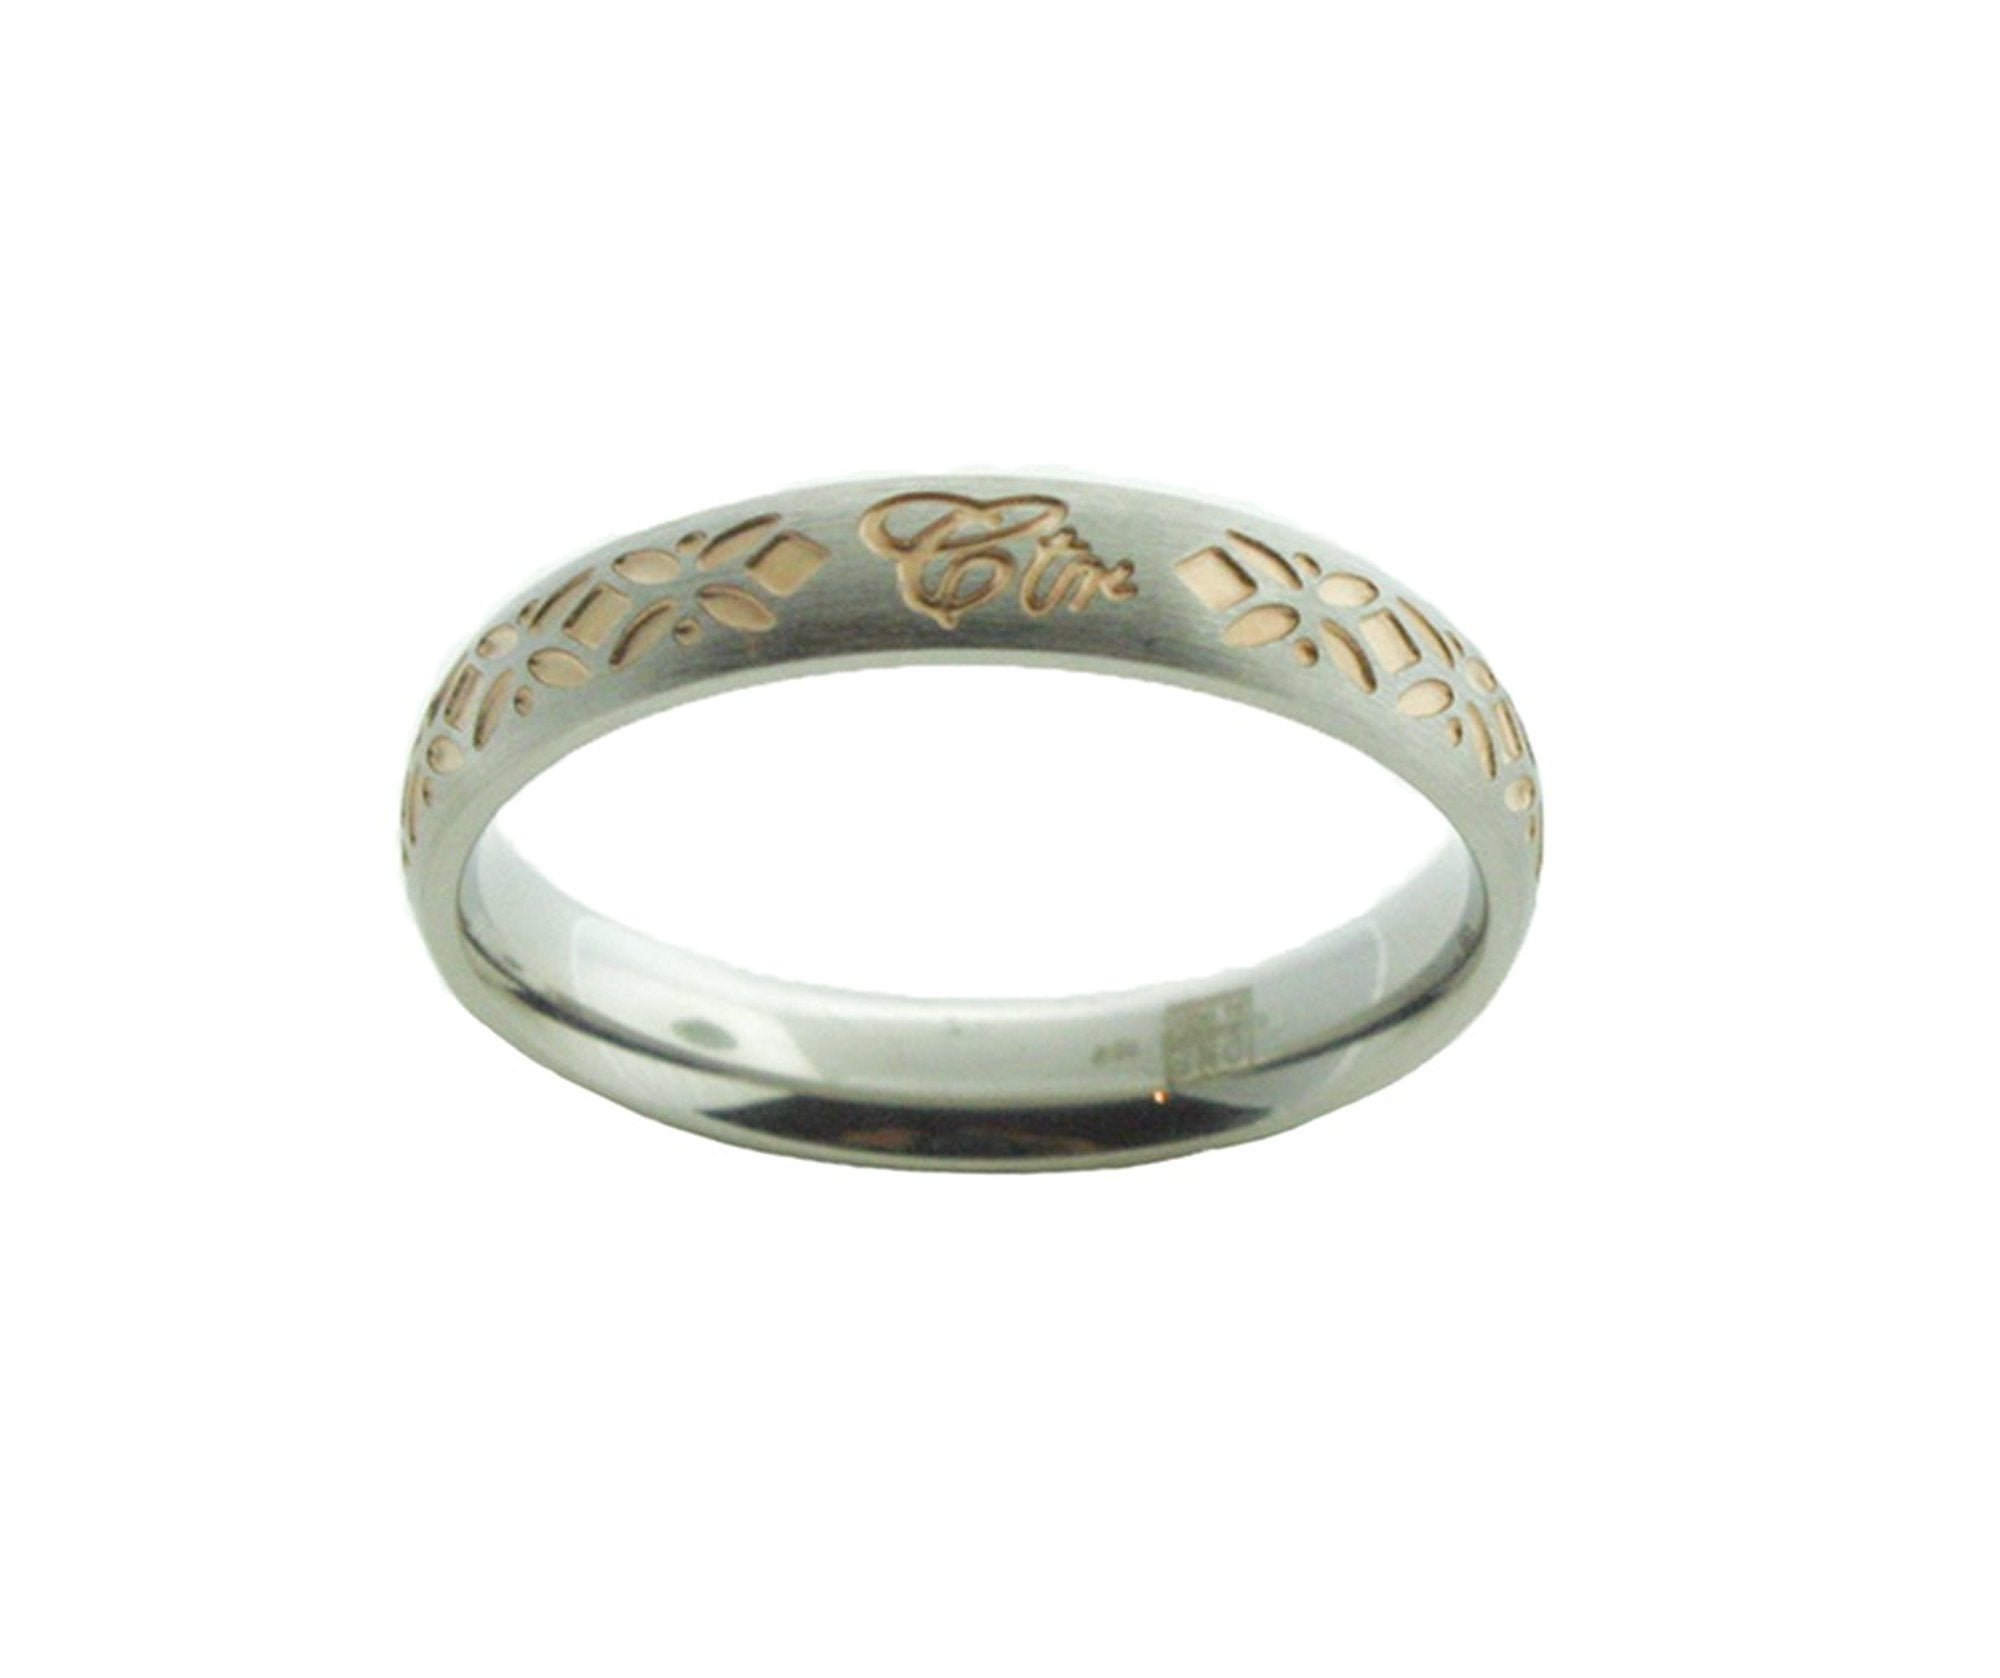 J167 Solstice Stainless Steel w/Rose Gold Tone Inlay CTR Ring